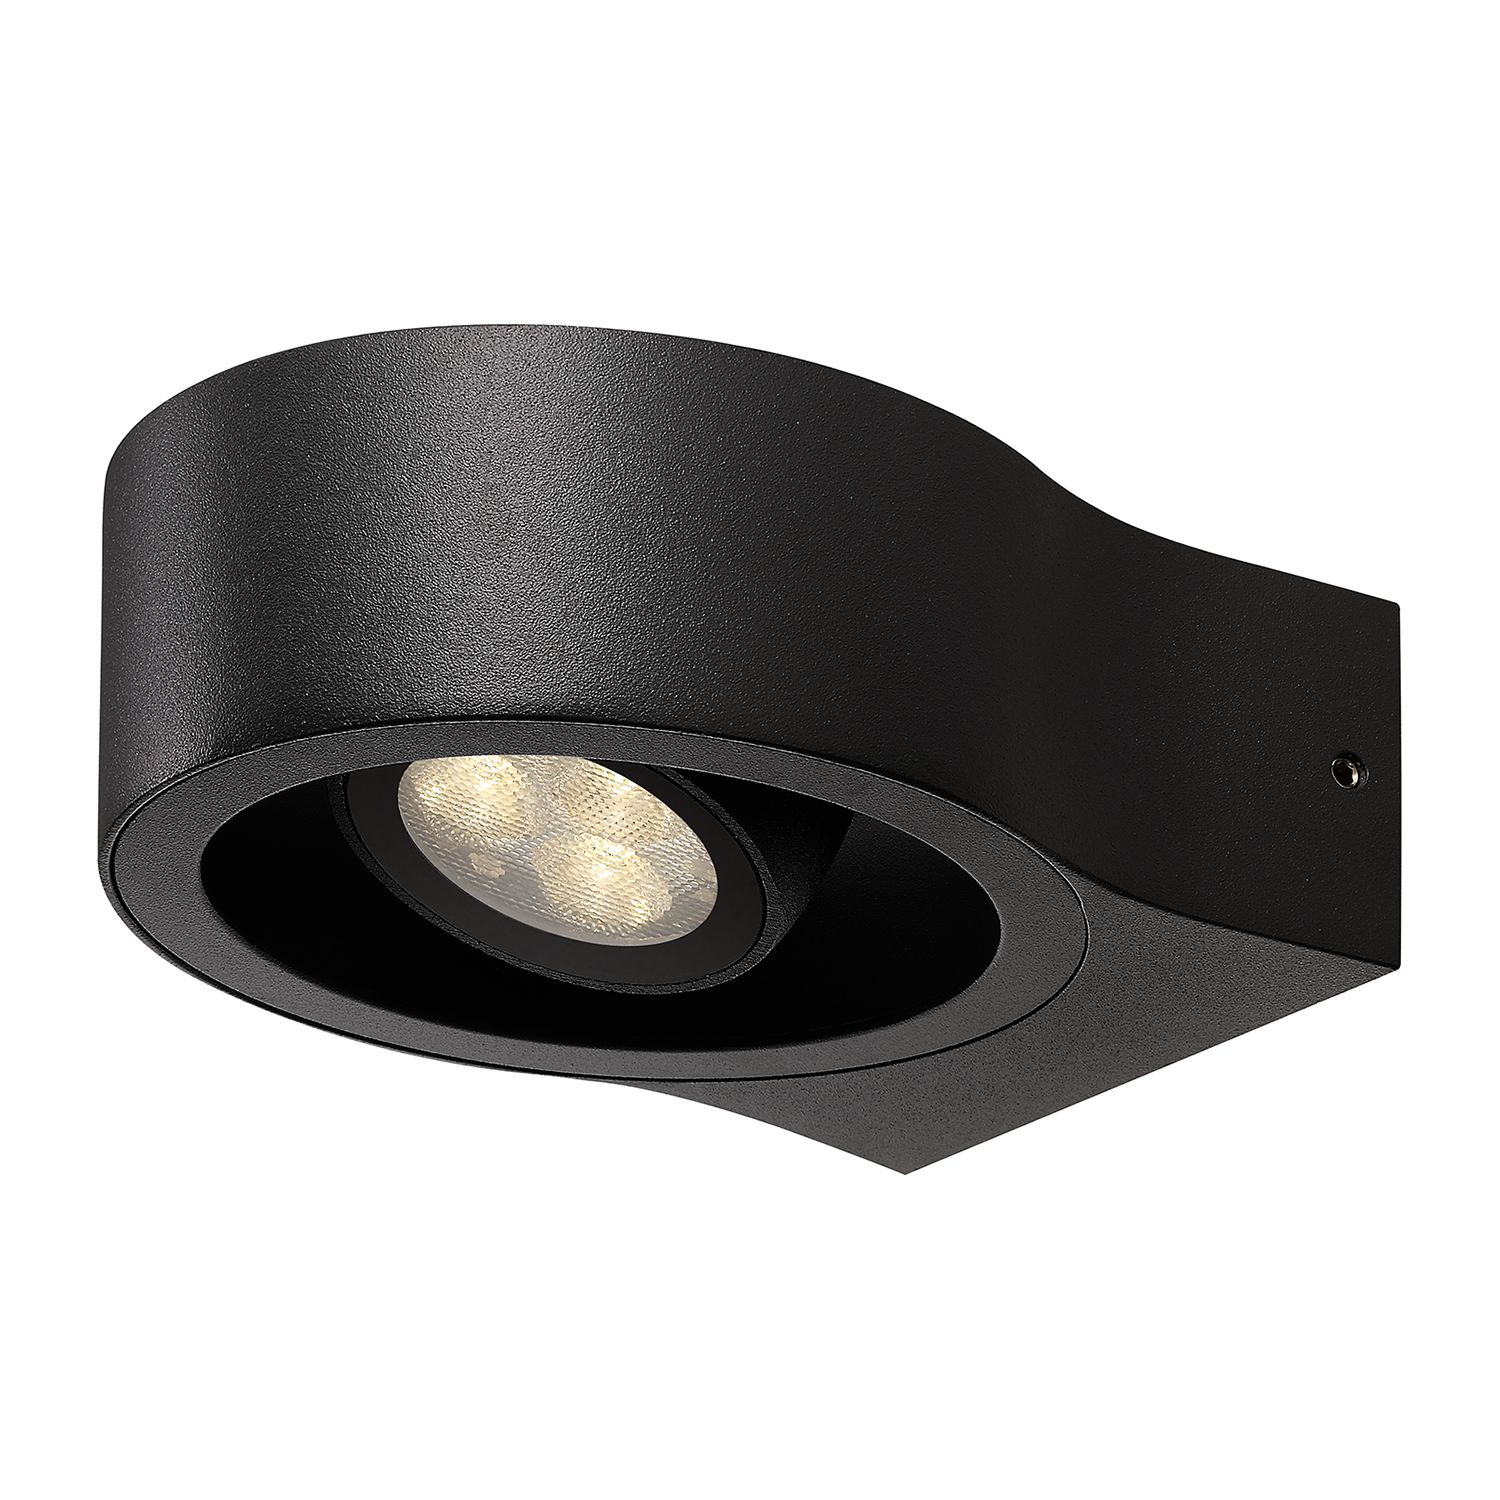 energie  A+, LED-buitenlamp Paulo - kunststof/staal - 1 lichtbron, Nordlux